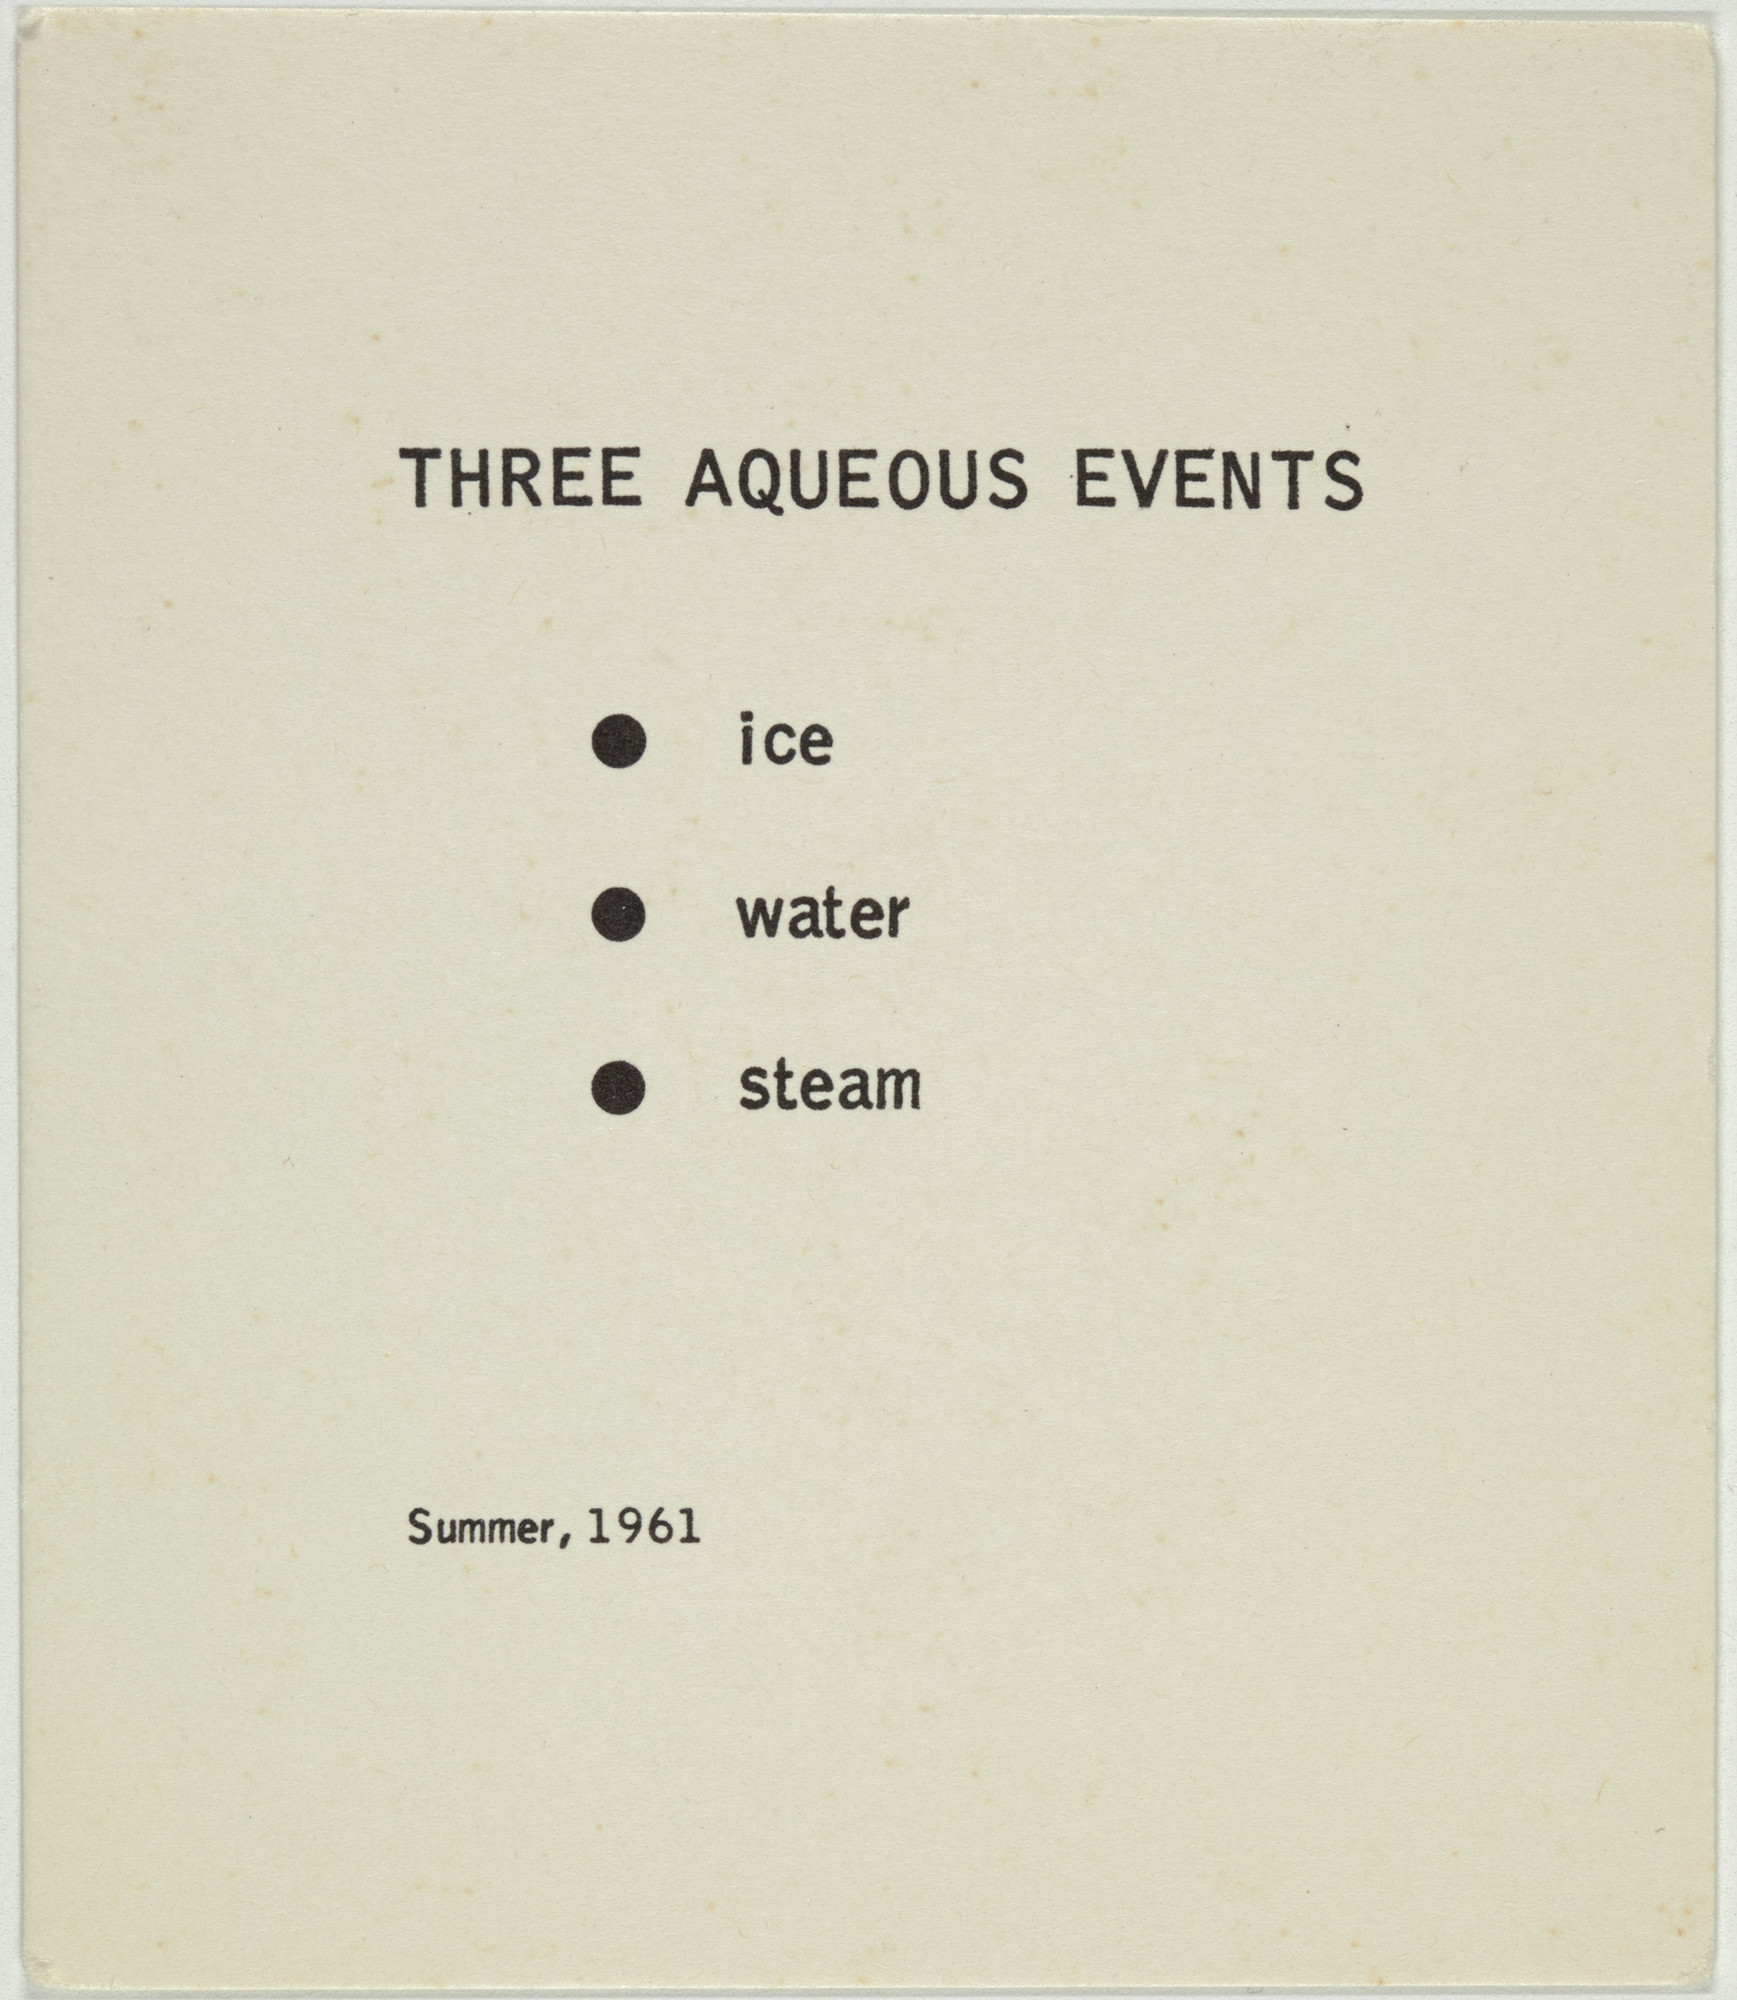 George Brecht. Three Aqueous Events from Water Yam. 1963